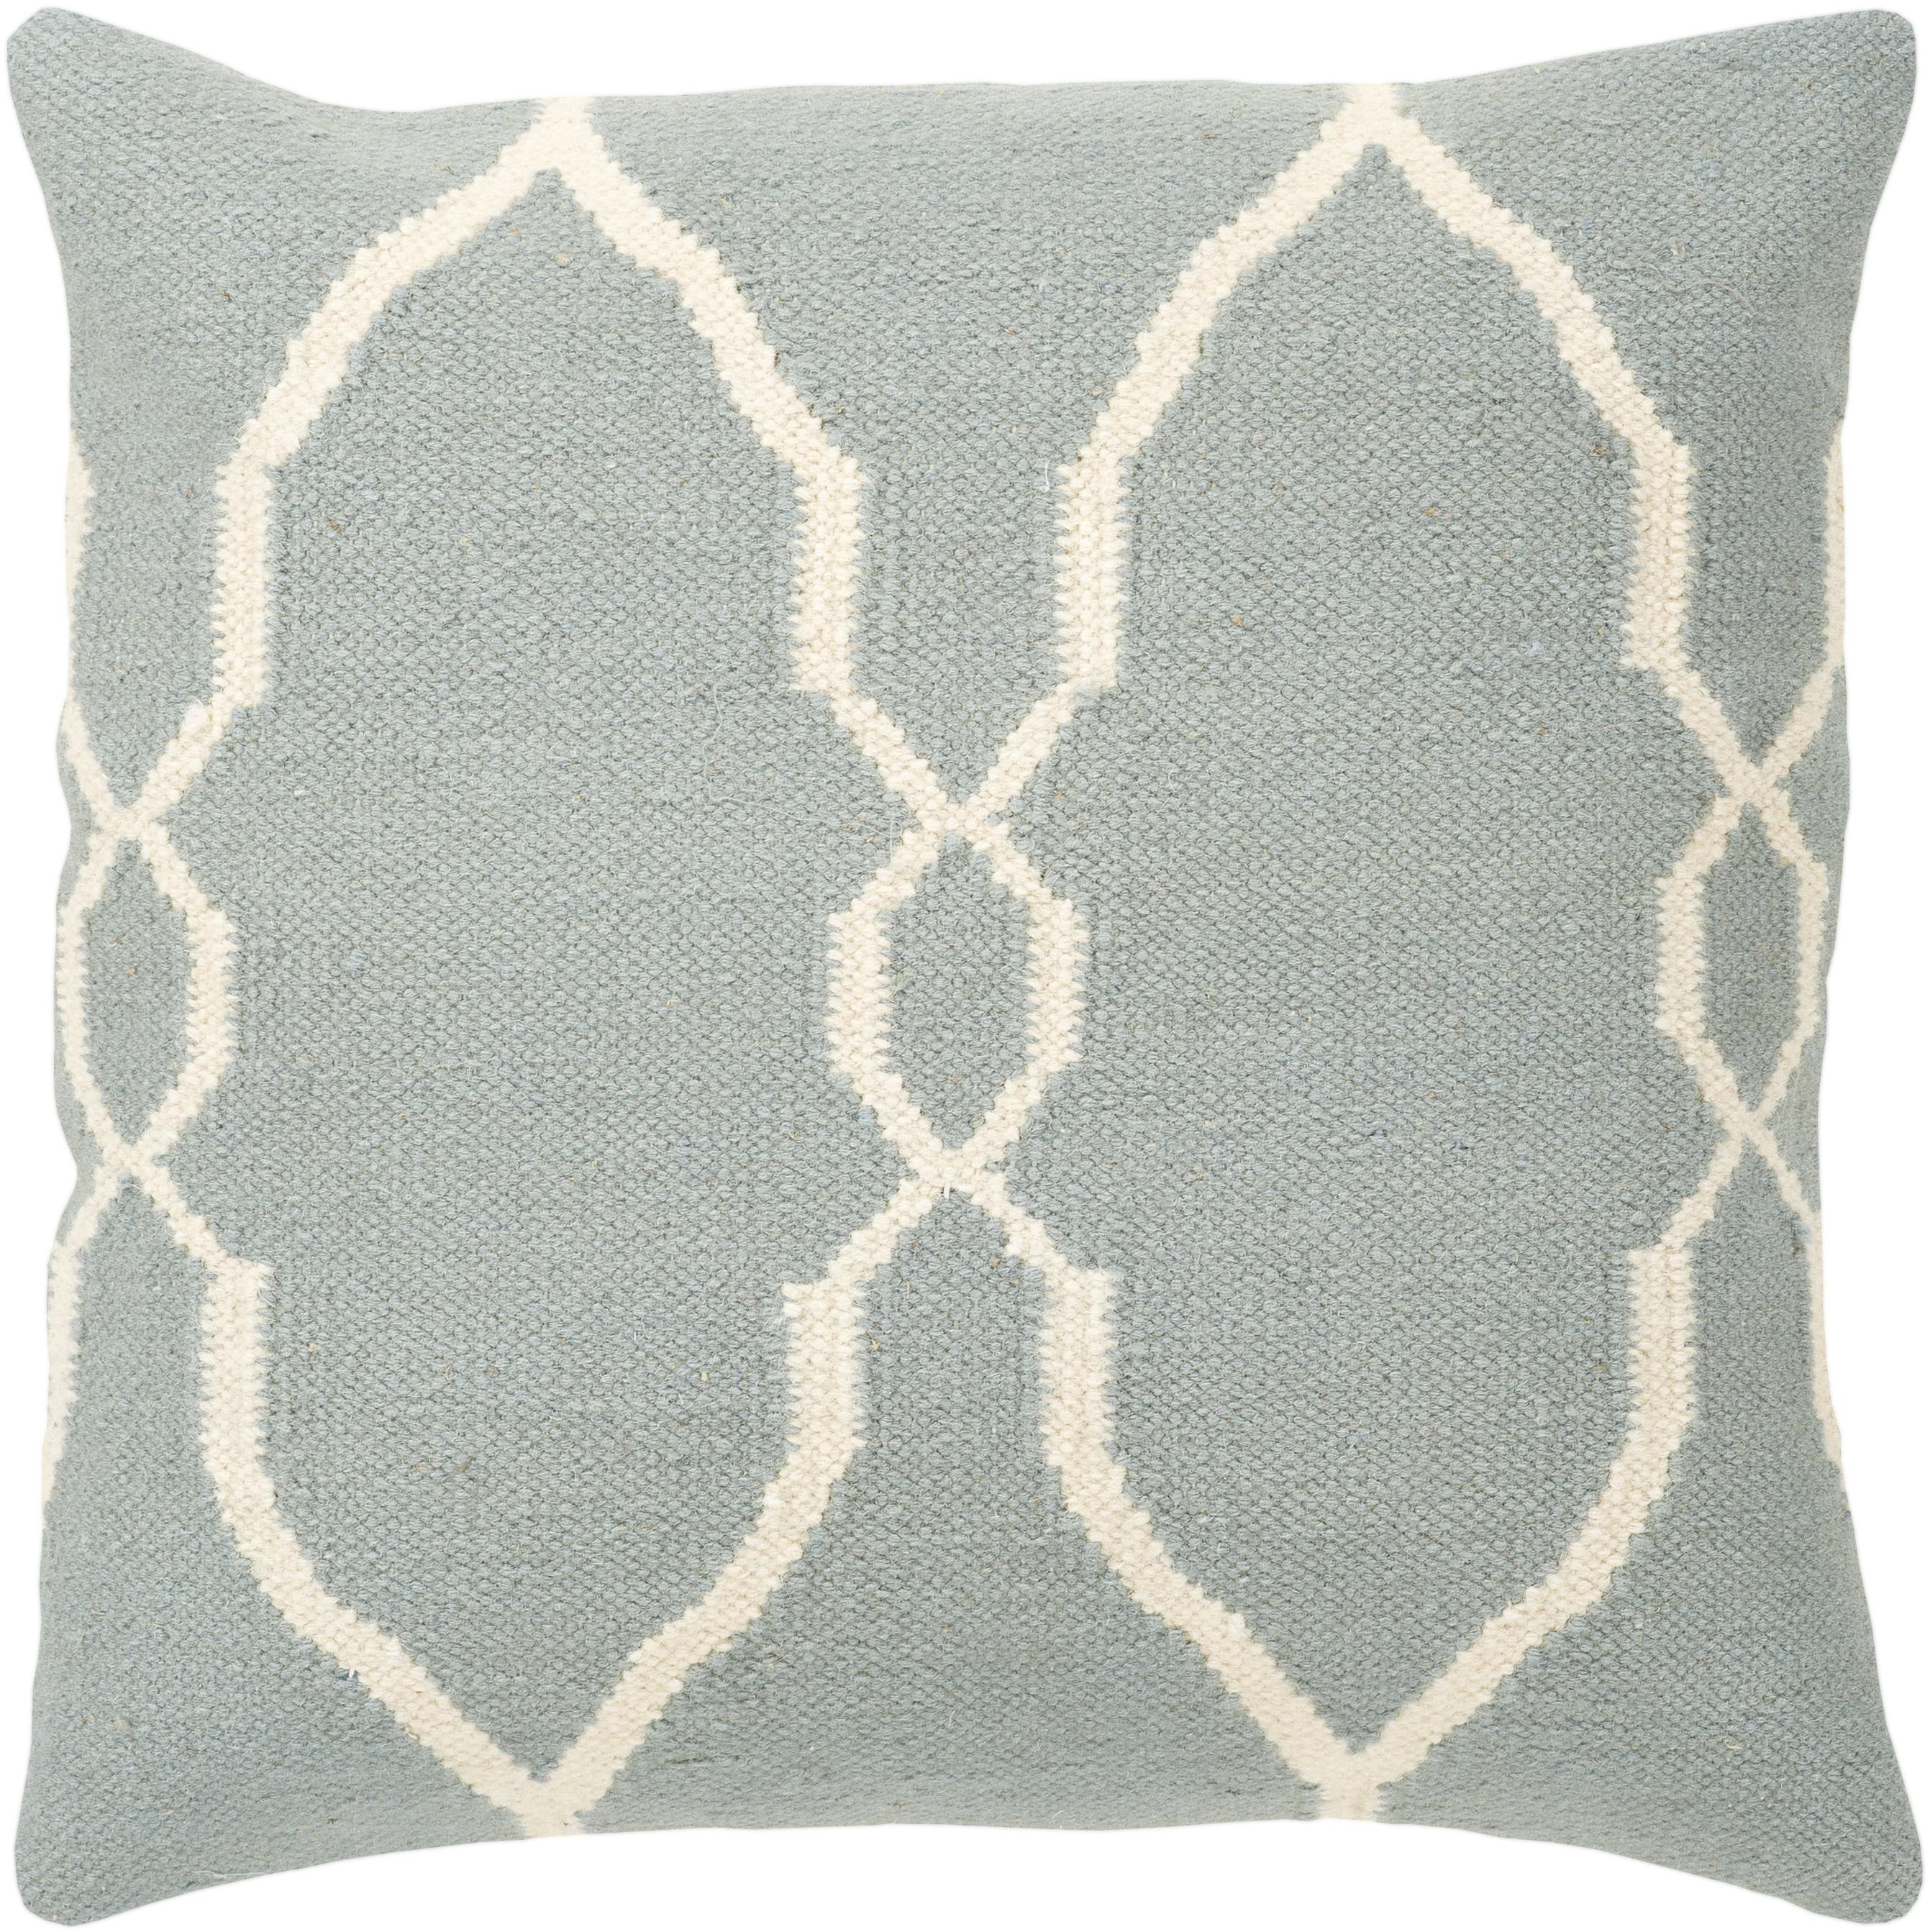 "Surya Pillows 18"" x 18"" Pillow - Item Number: FA022-1818P"